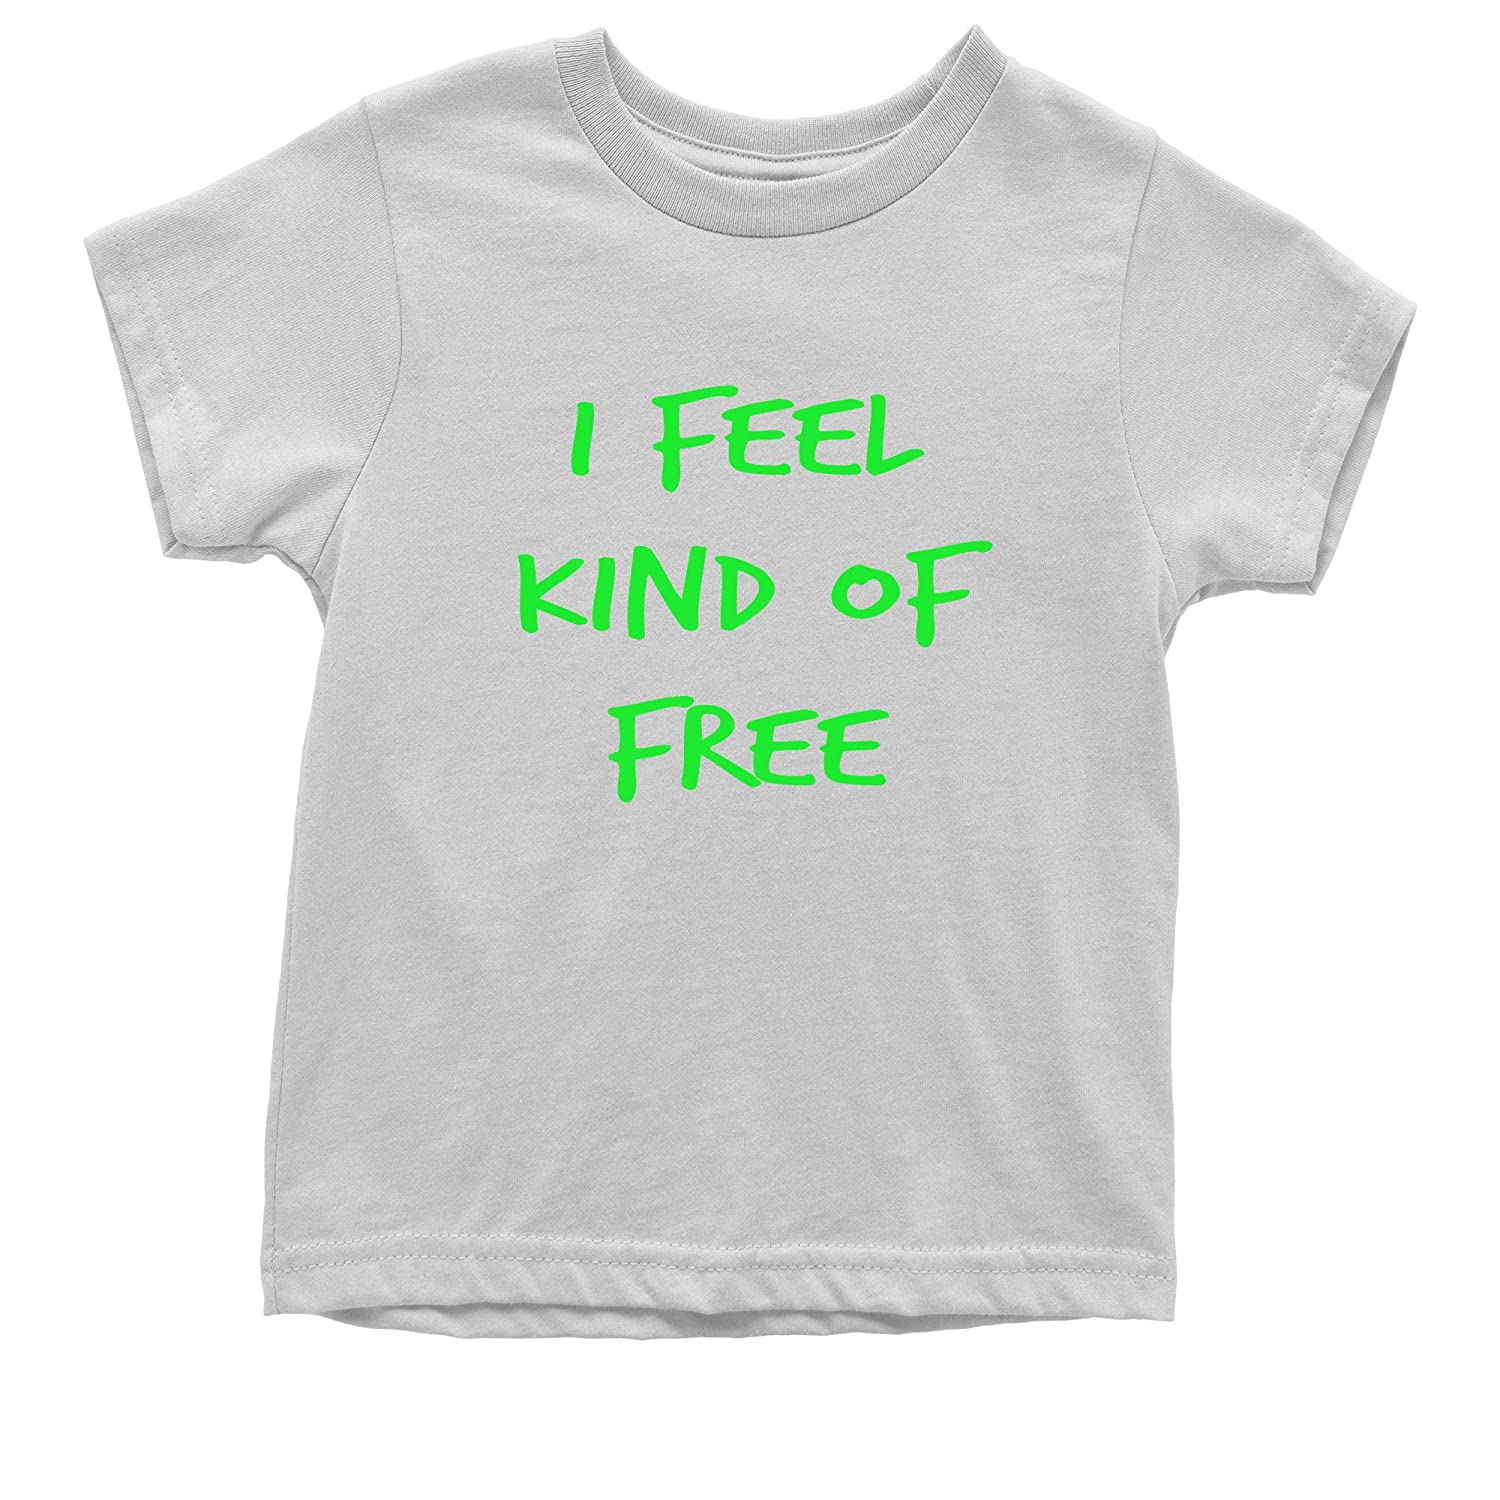 Expression Tees I Feel Kind of Free Youth T-Shirt